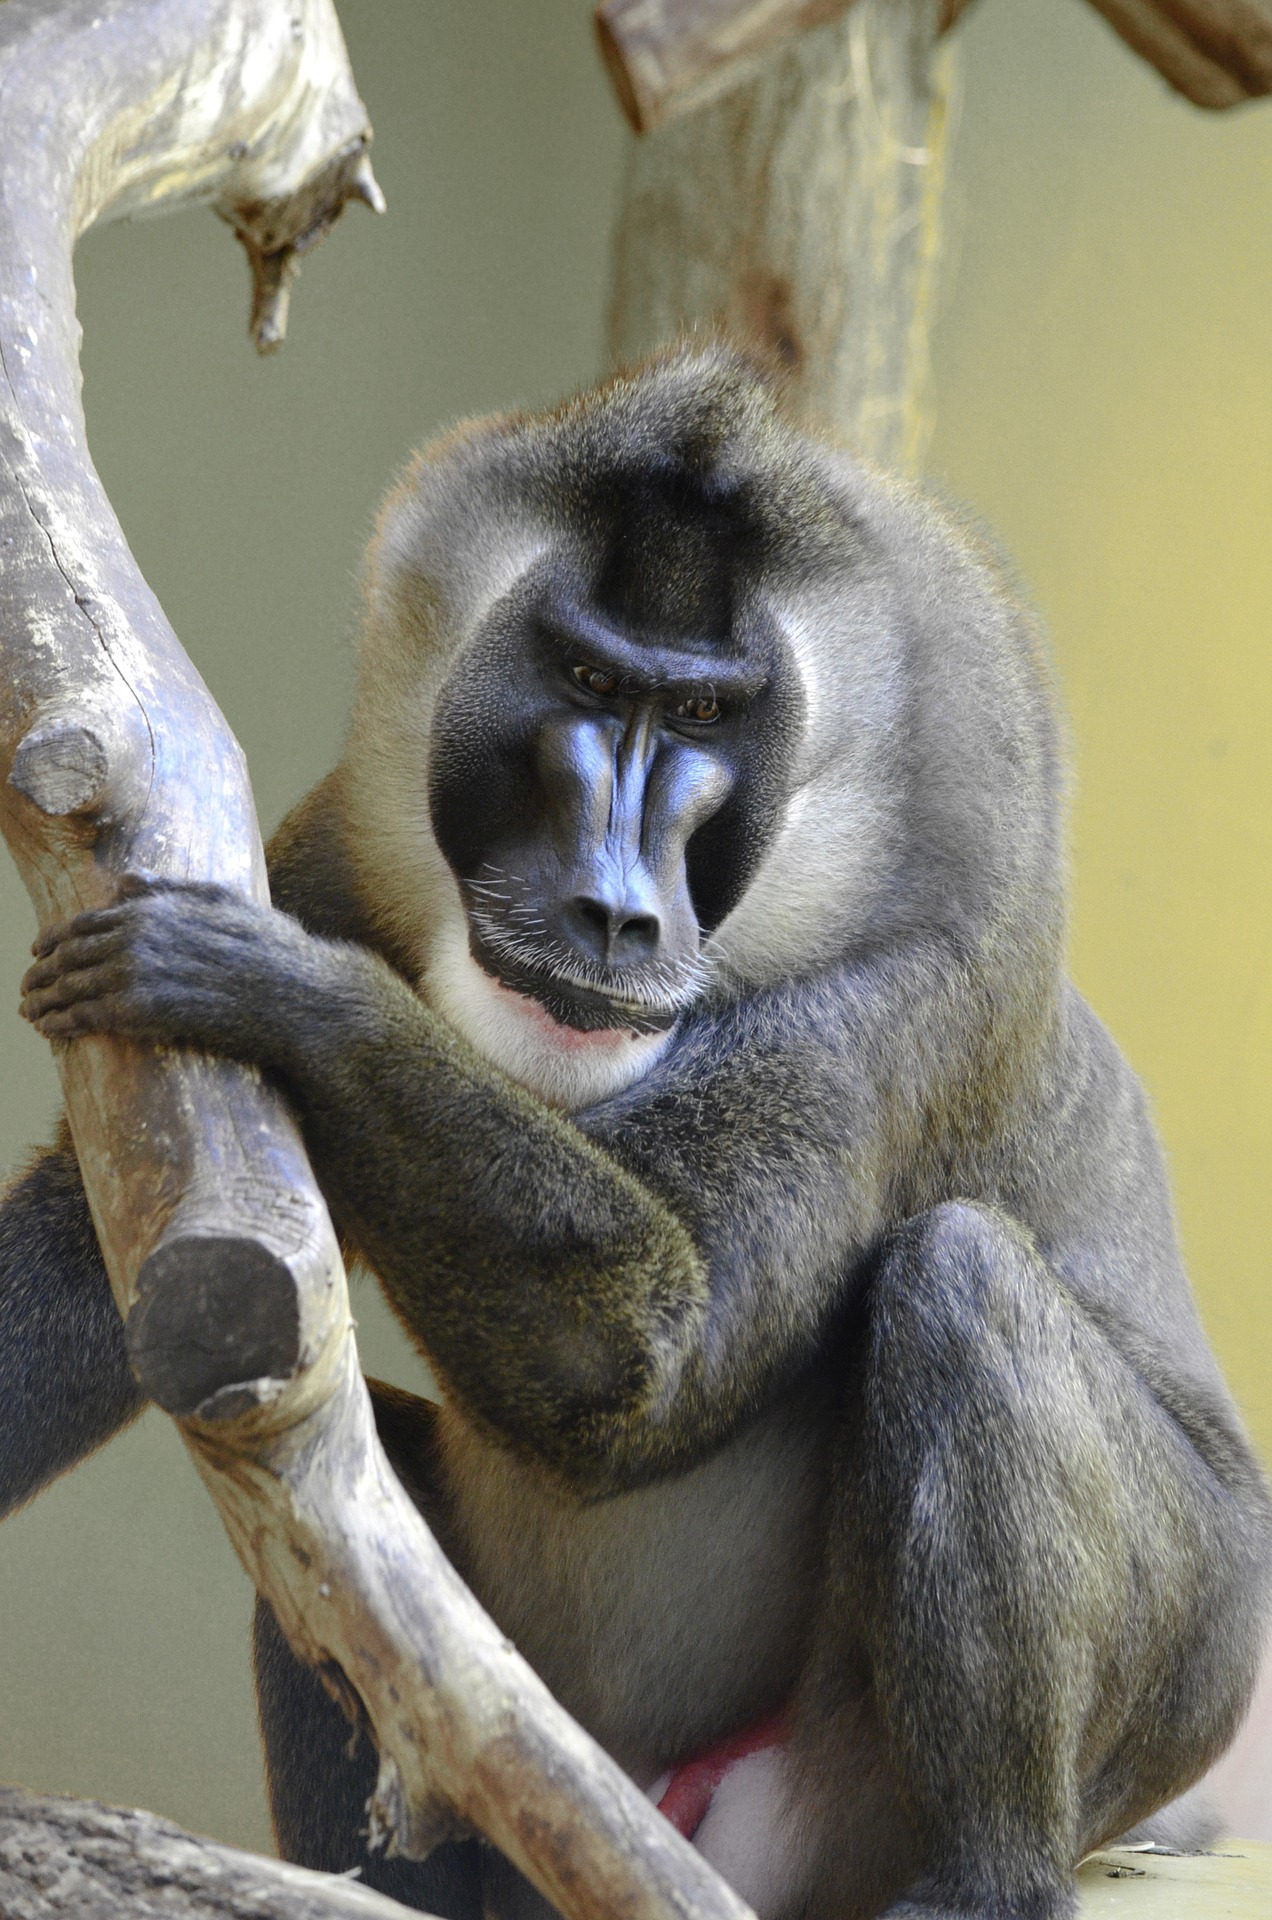 Image of a baboon in the Nigerian environment